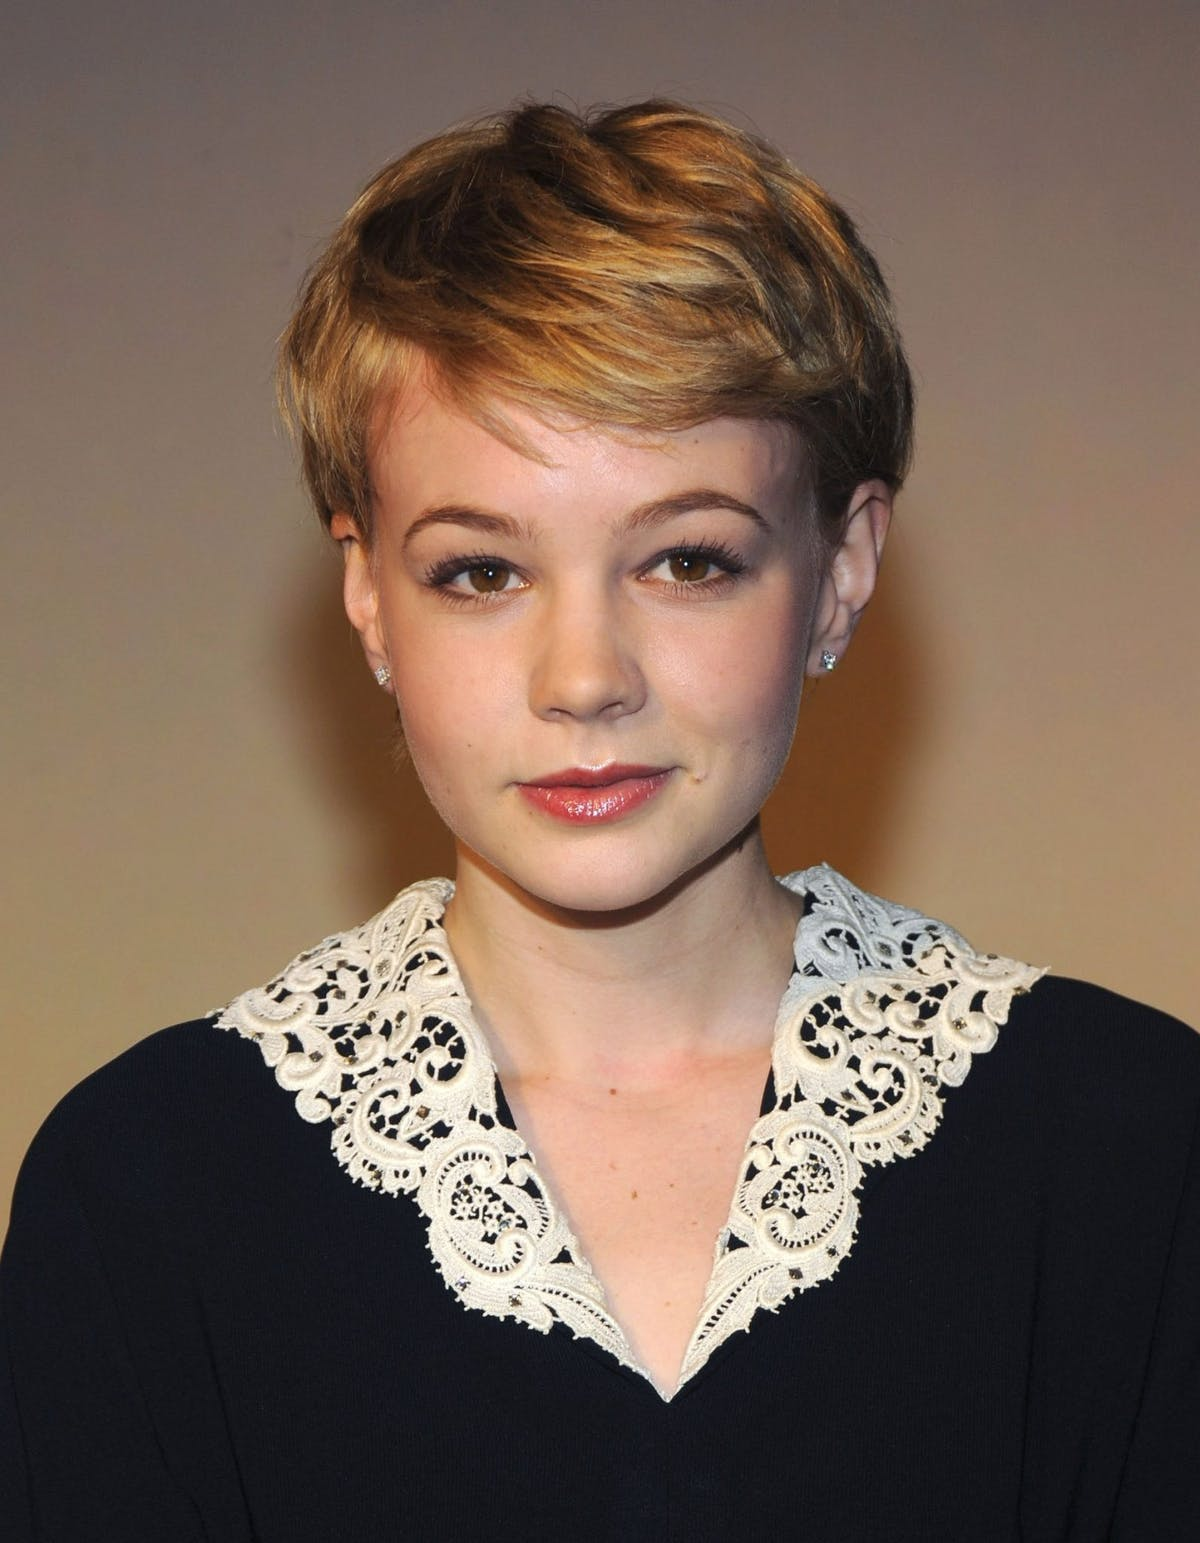 Pin on My Style Pinboard |Carey Mulligan An Education Hair